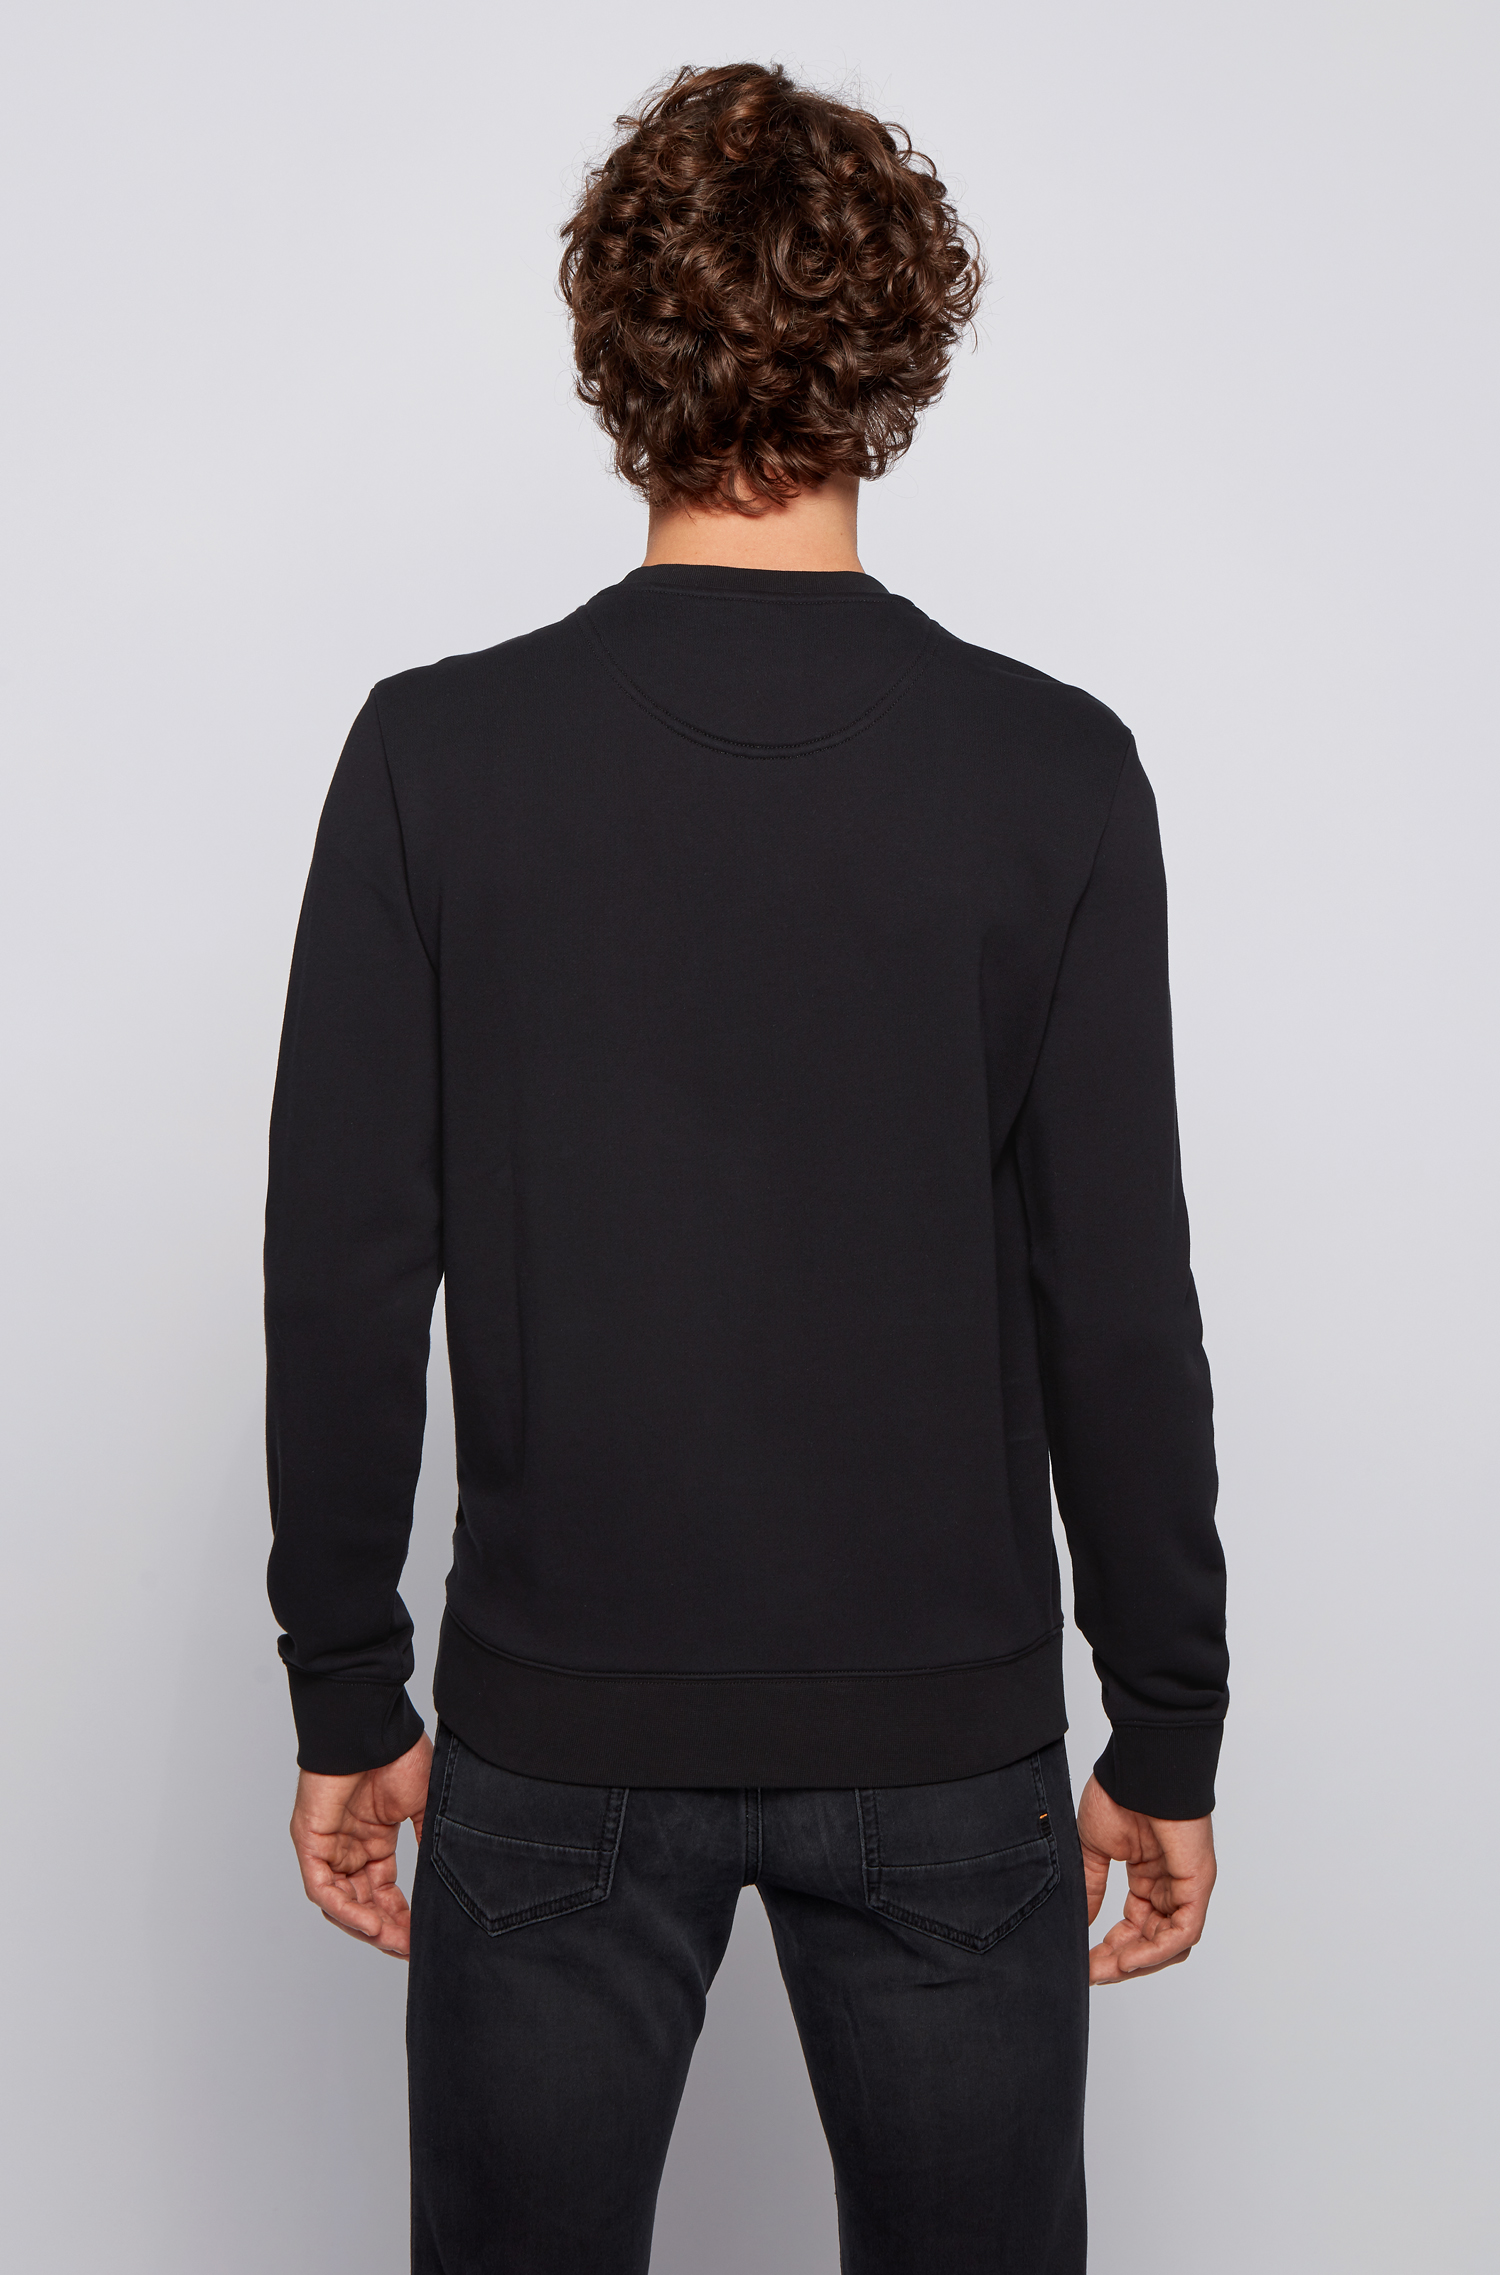 Relaxed fit cotton sweatshirt with logo and embroidery BOSS | Sweatshirt | 50448138001